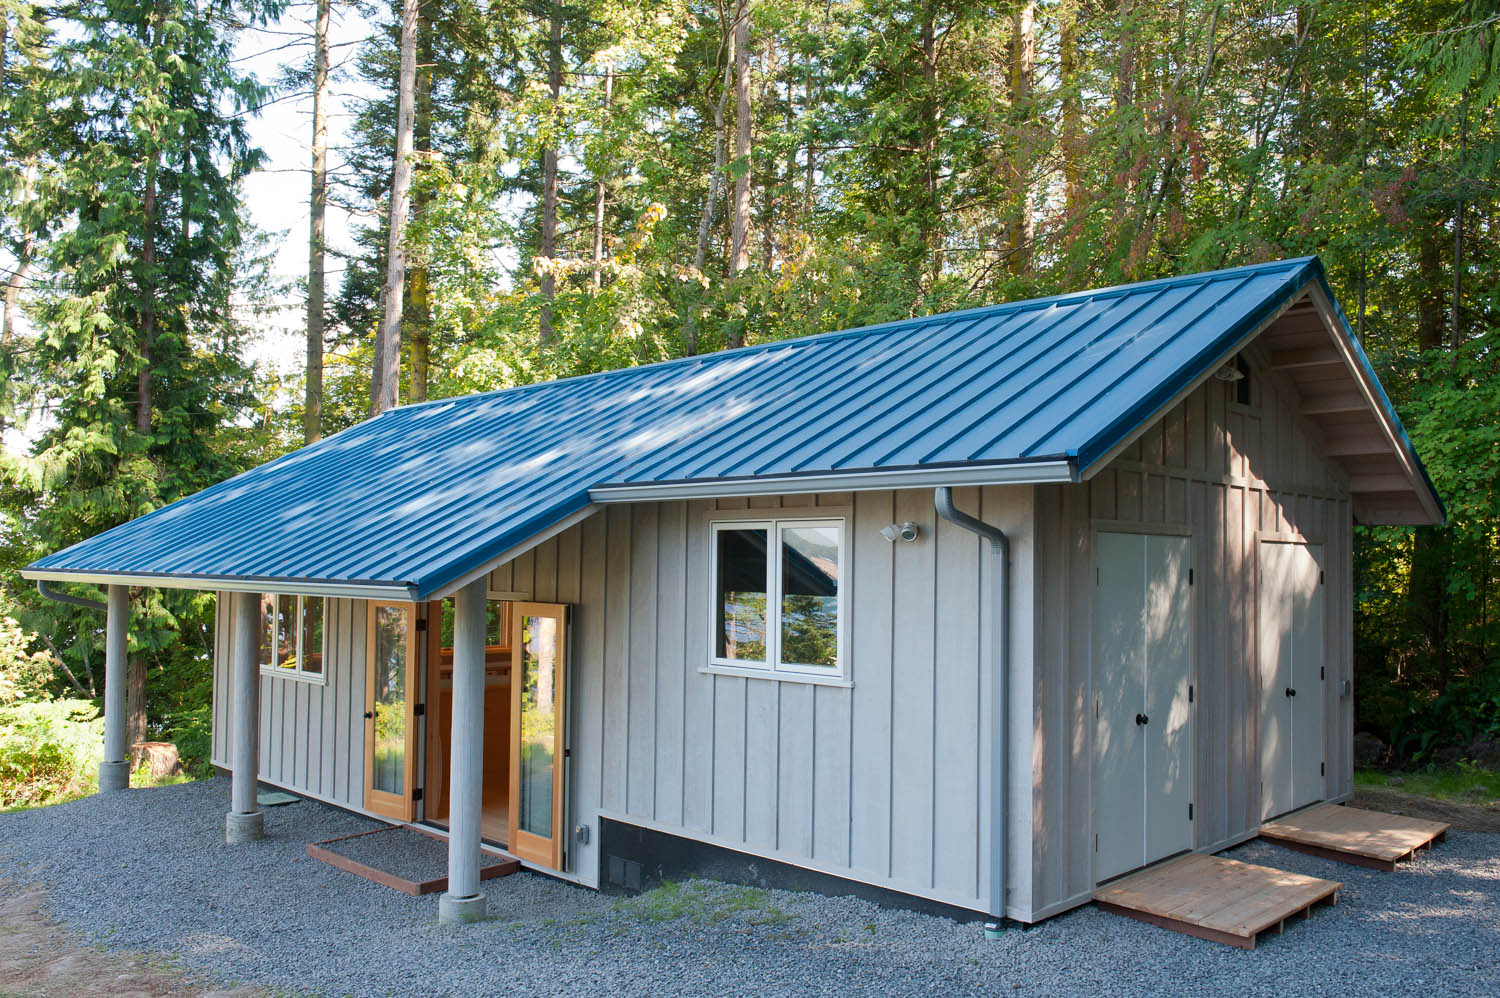 lopez island construction contractor swal'lech renovation